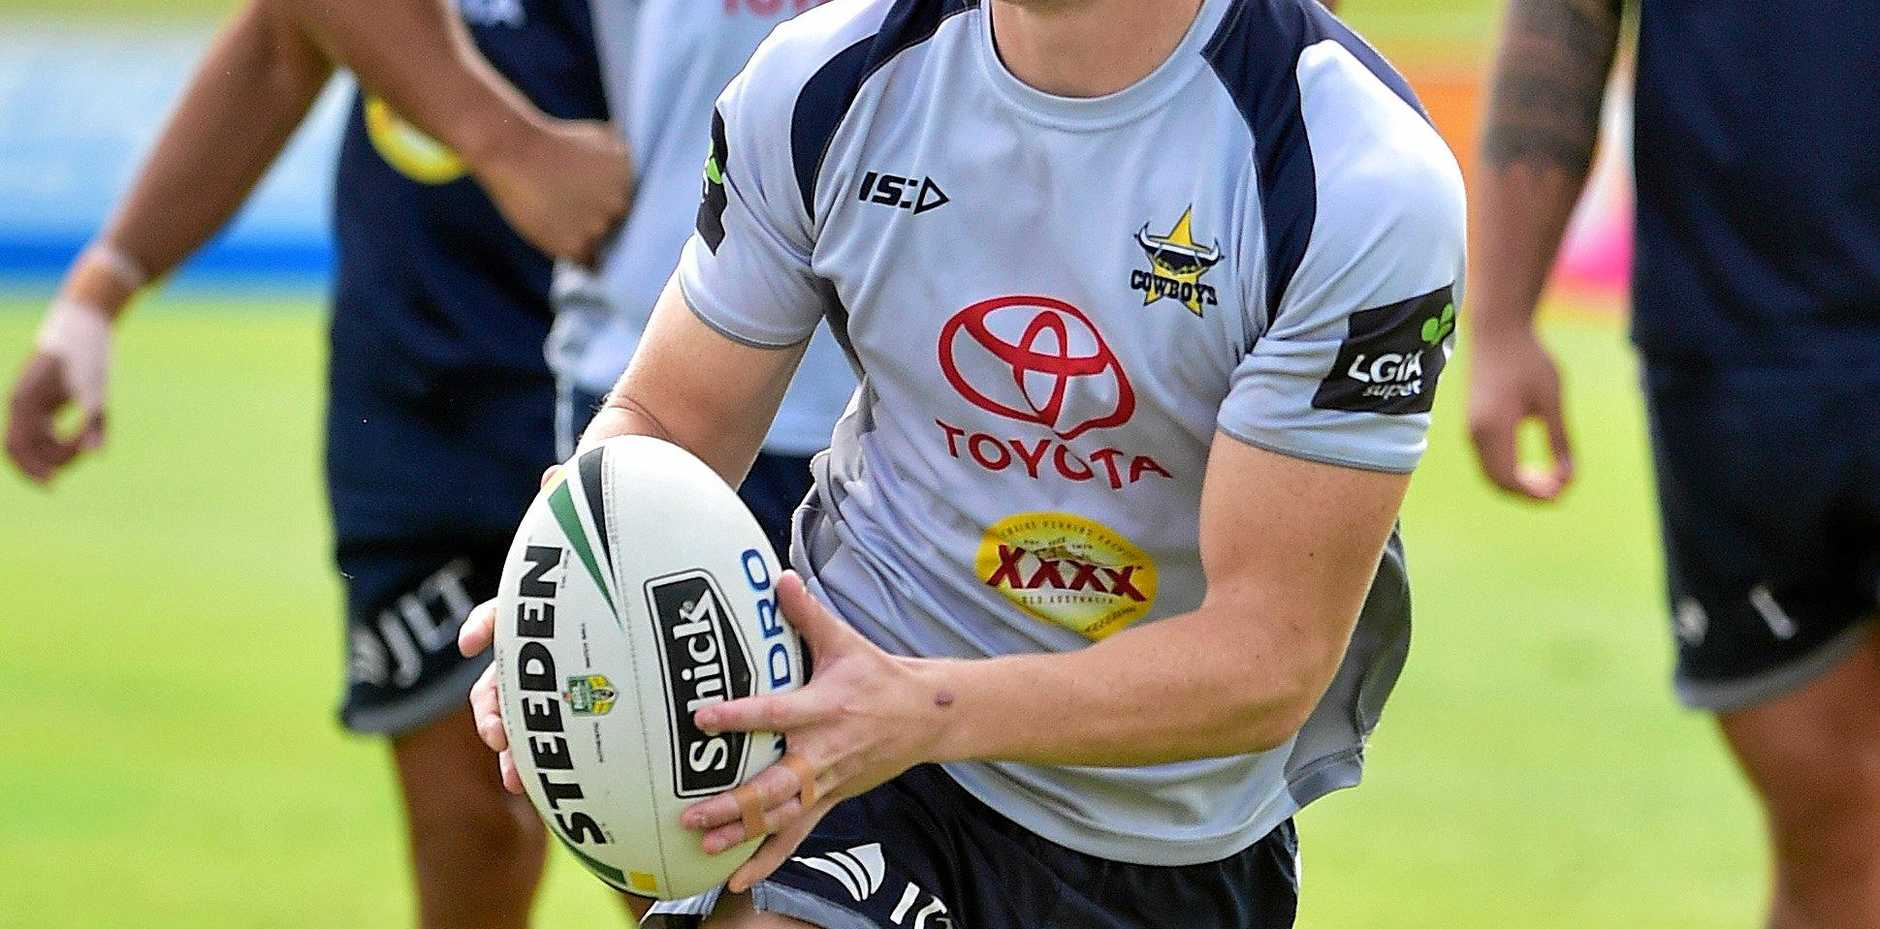 DETERMINED: Former North Queensland Cowboy Kyle Laybutt at training last year.